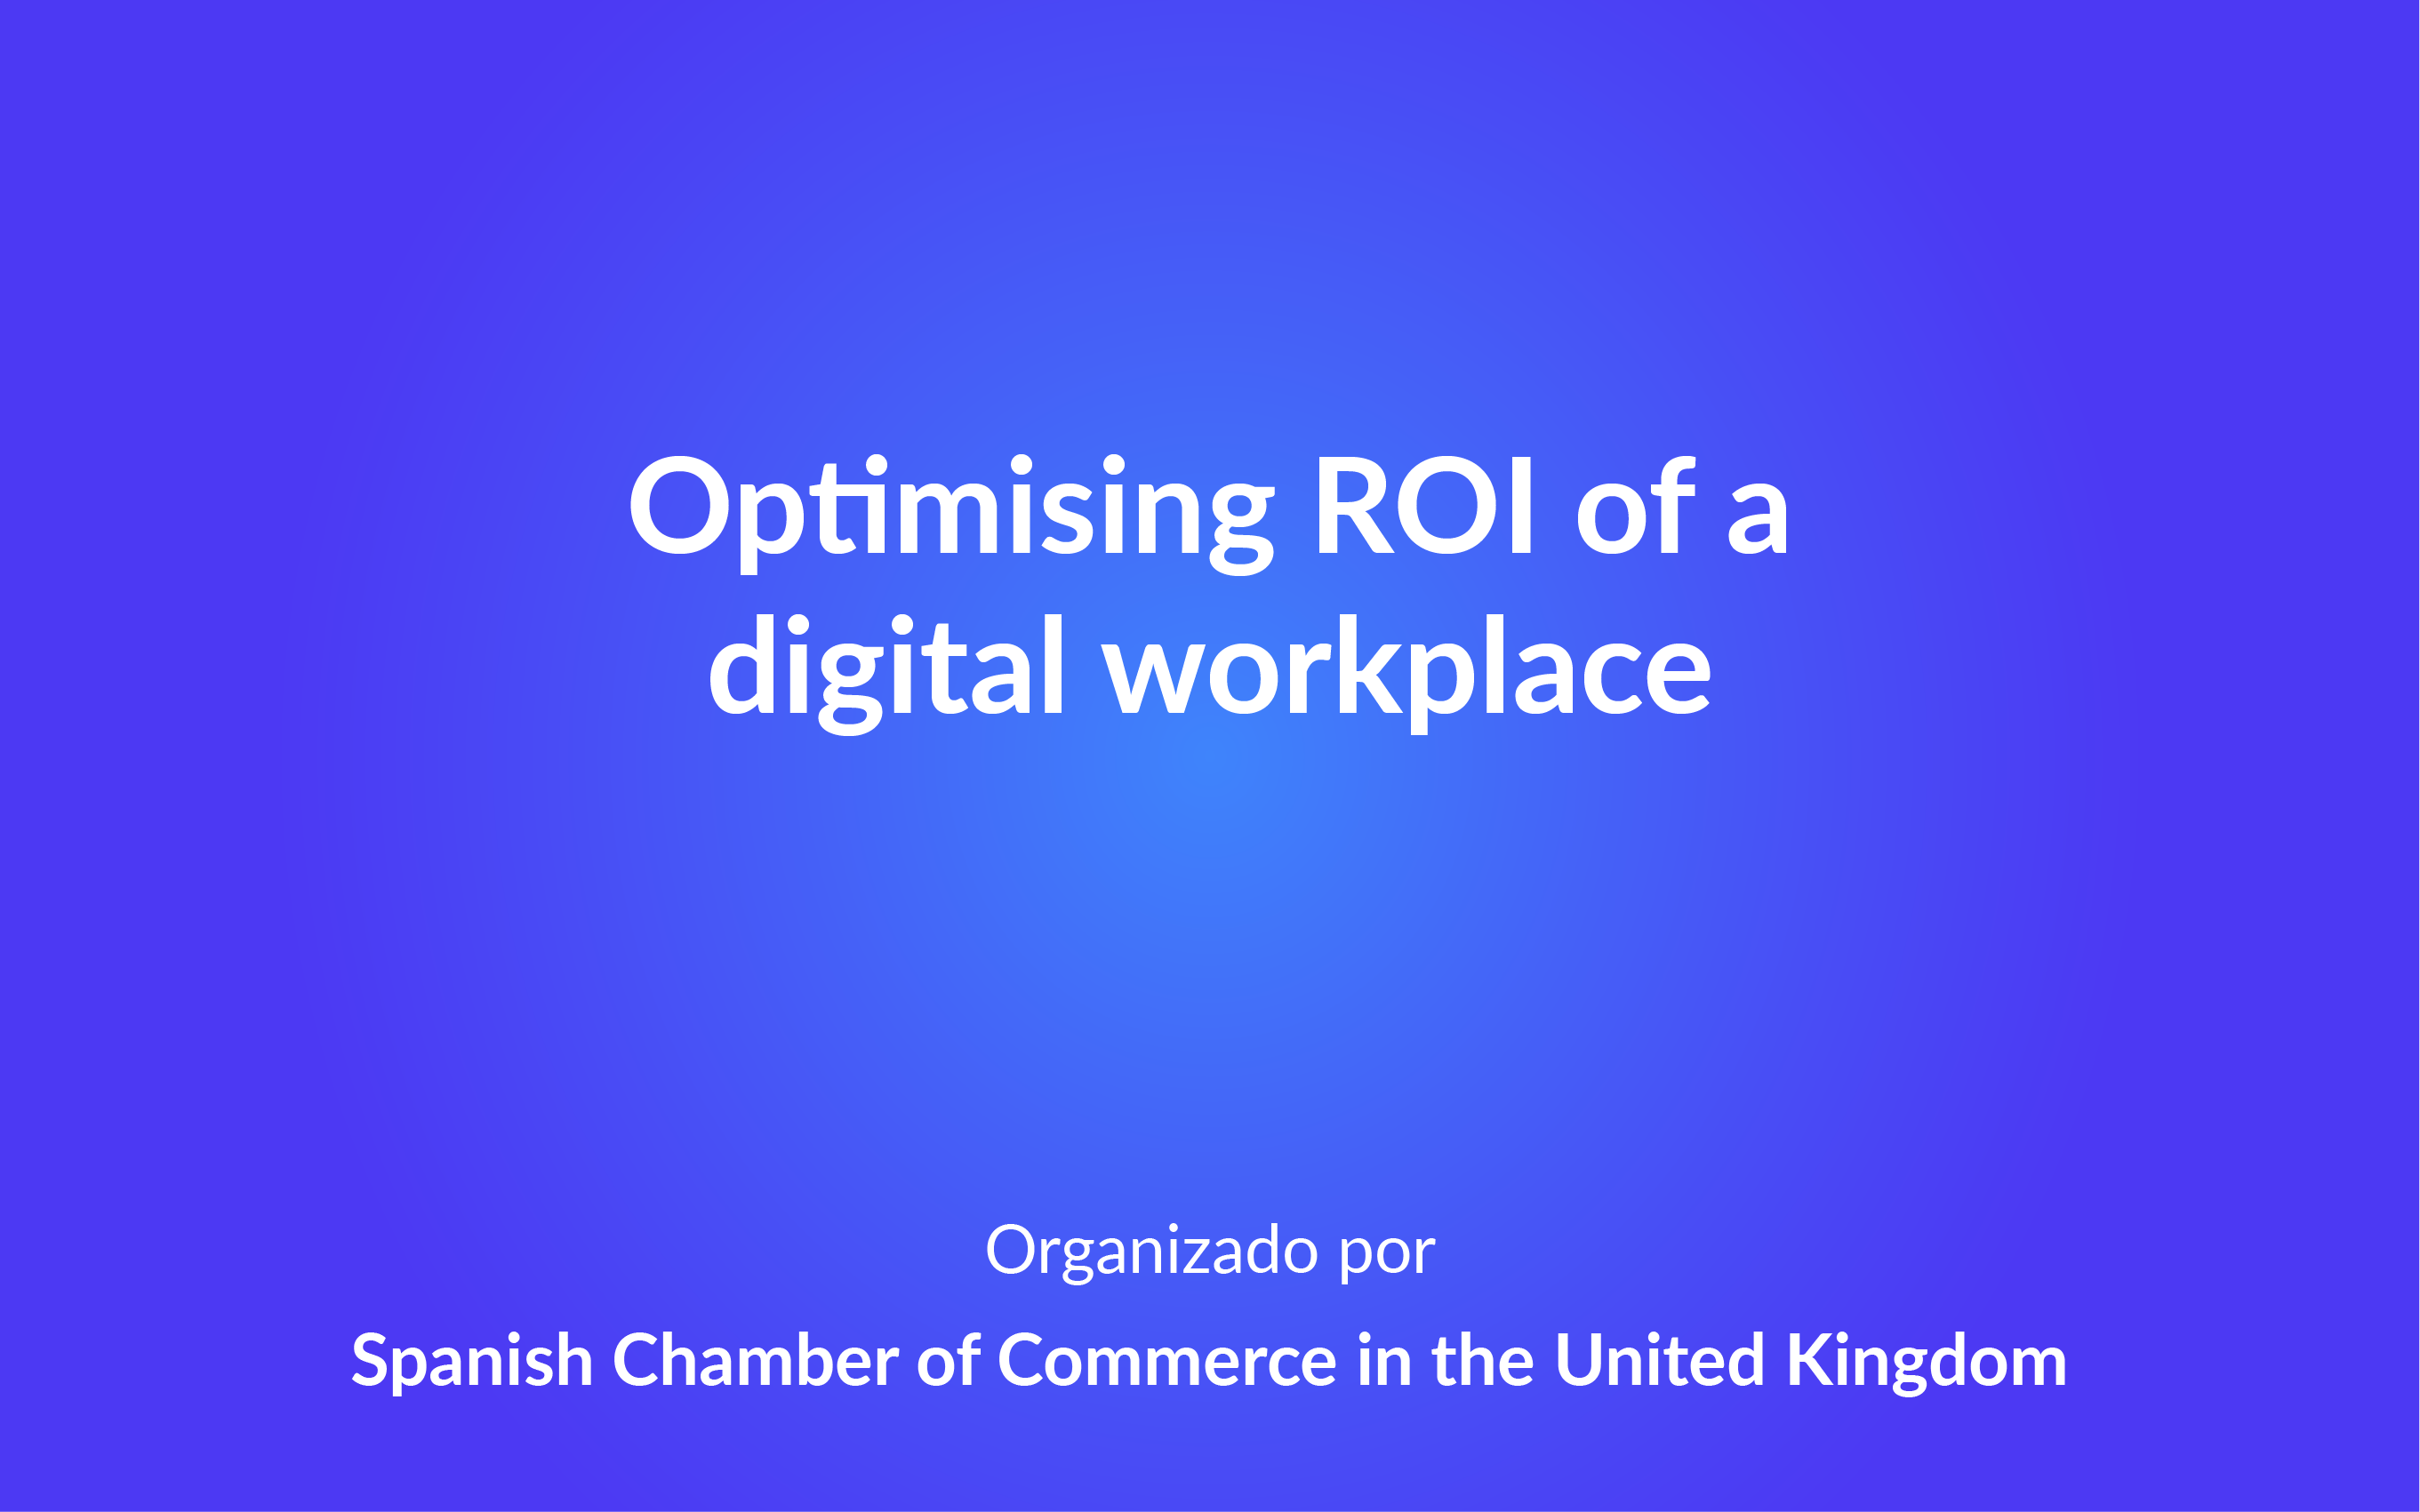 Optimising ROi of a digital workplace